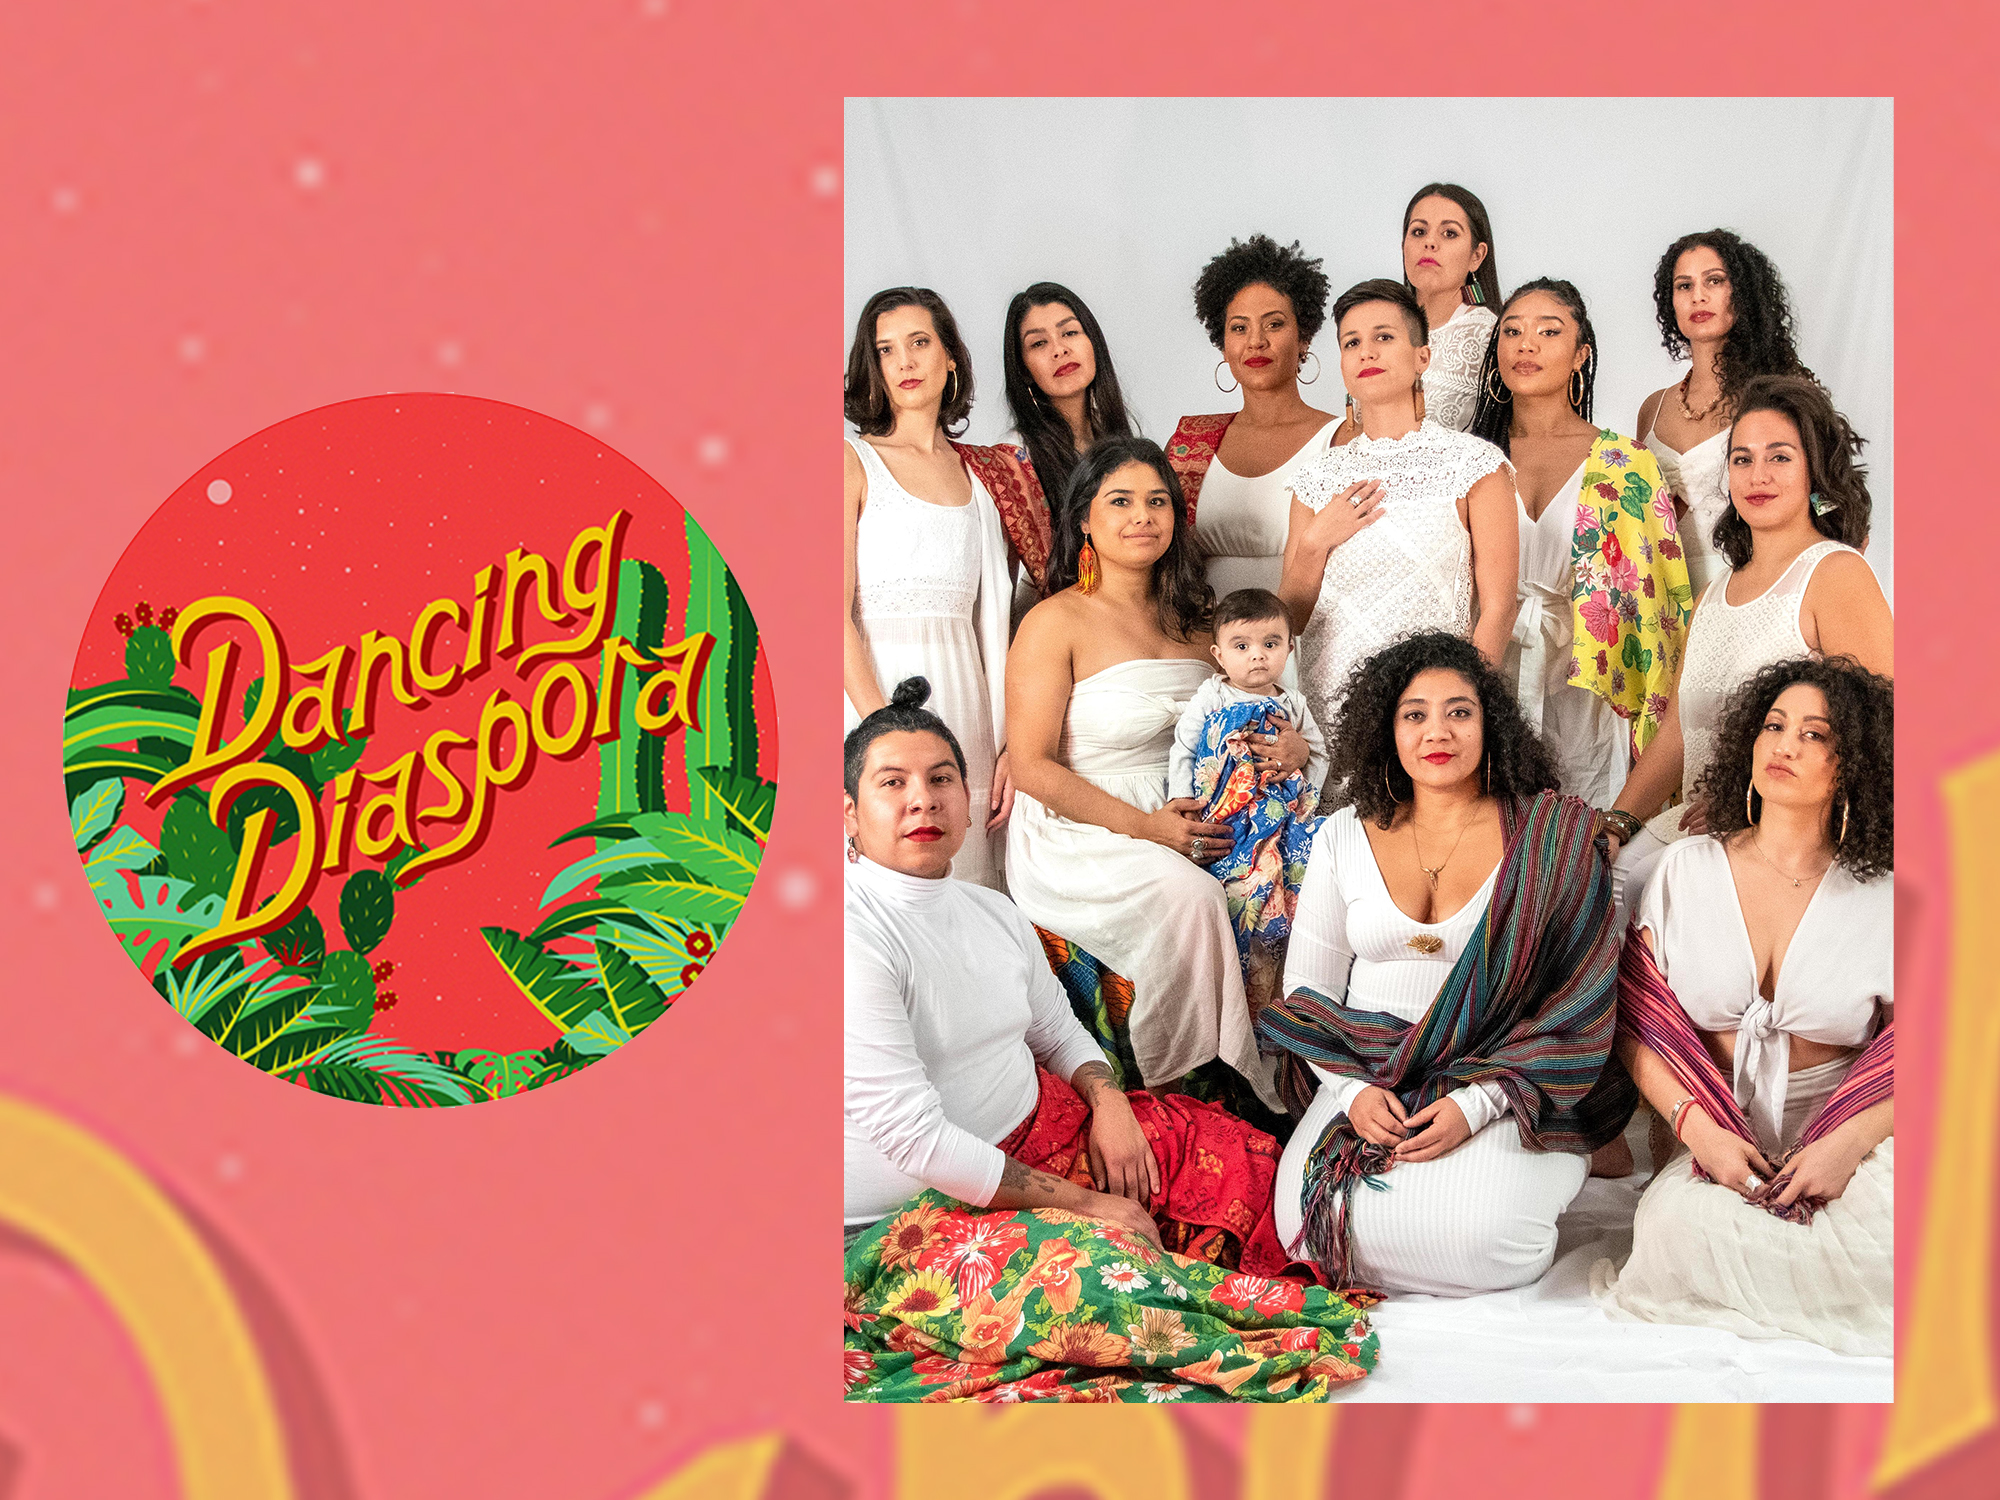 Dancing Diaspora poses for a portrait in front of a draped white backdrop